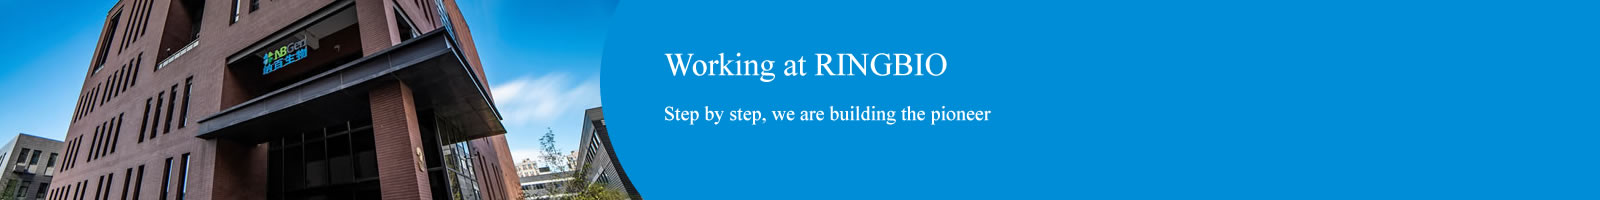 Working at RINGBIO, step by step we are building the pioneer